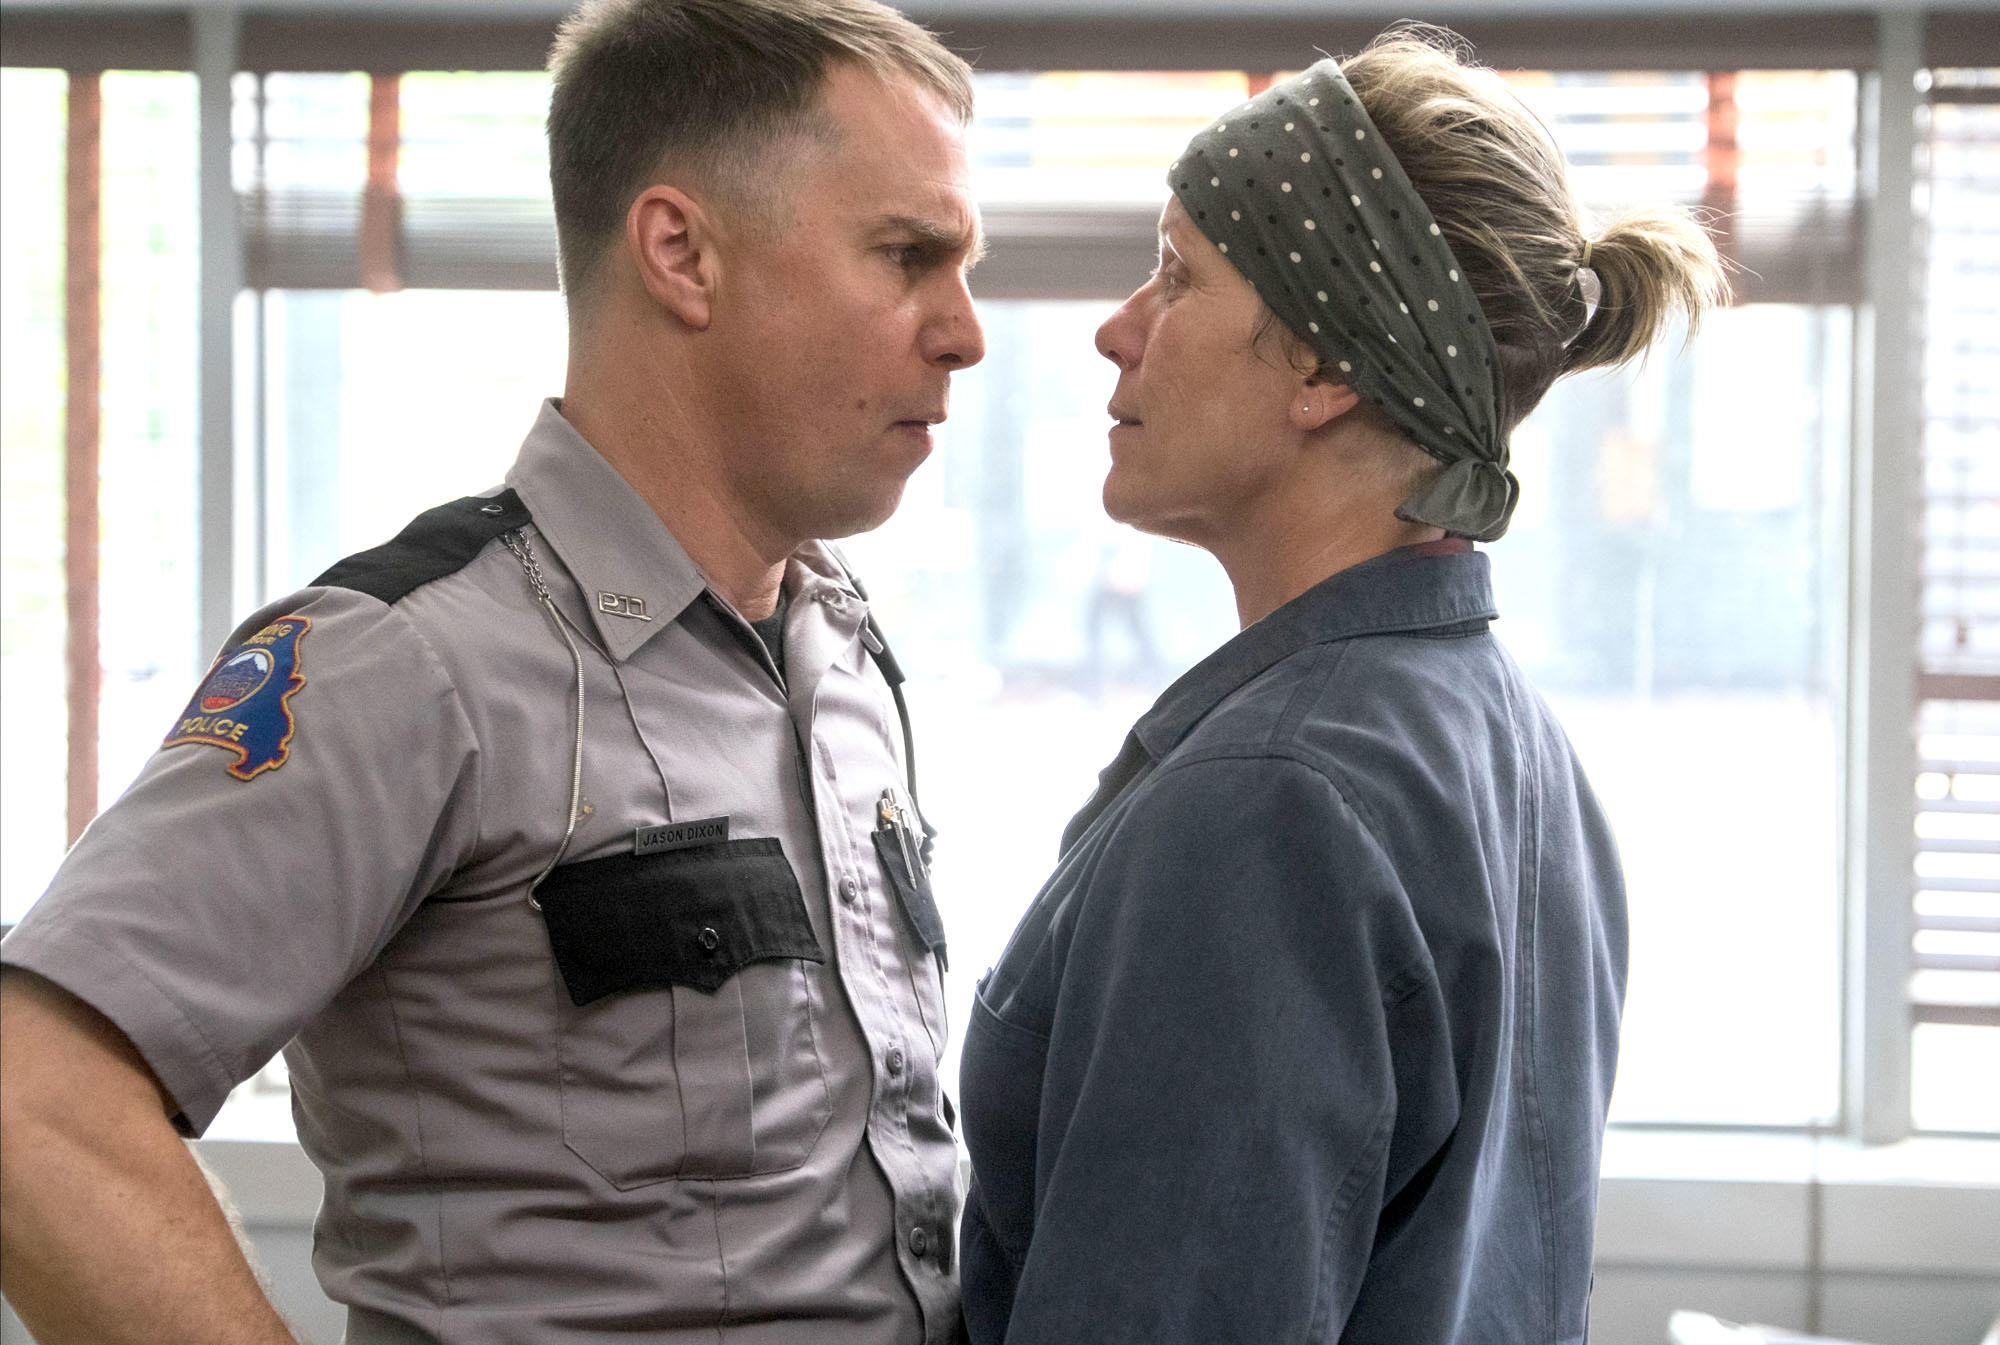 Sam Rockwell and Frances McDormand in THREE BILLBOARDS OUTSIDE EBBING, MISSOURI (2017)